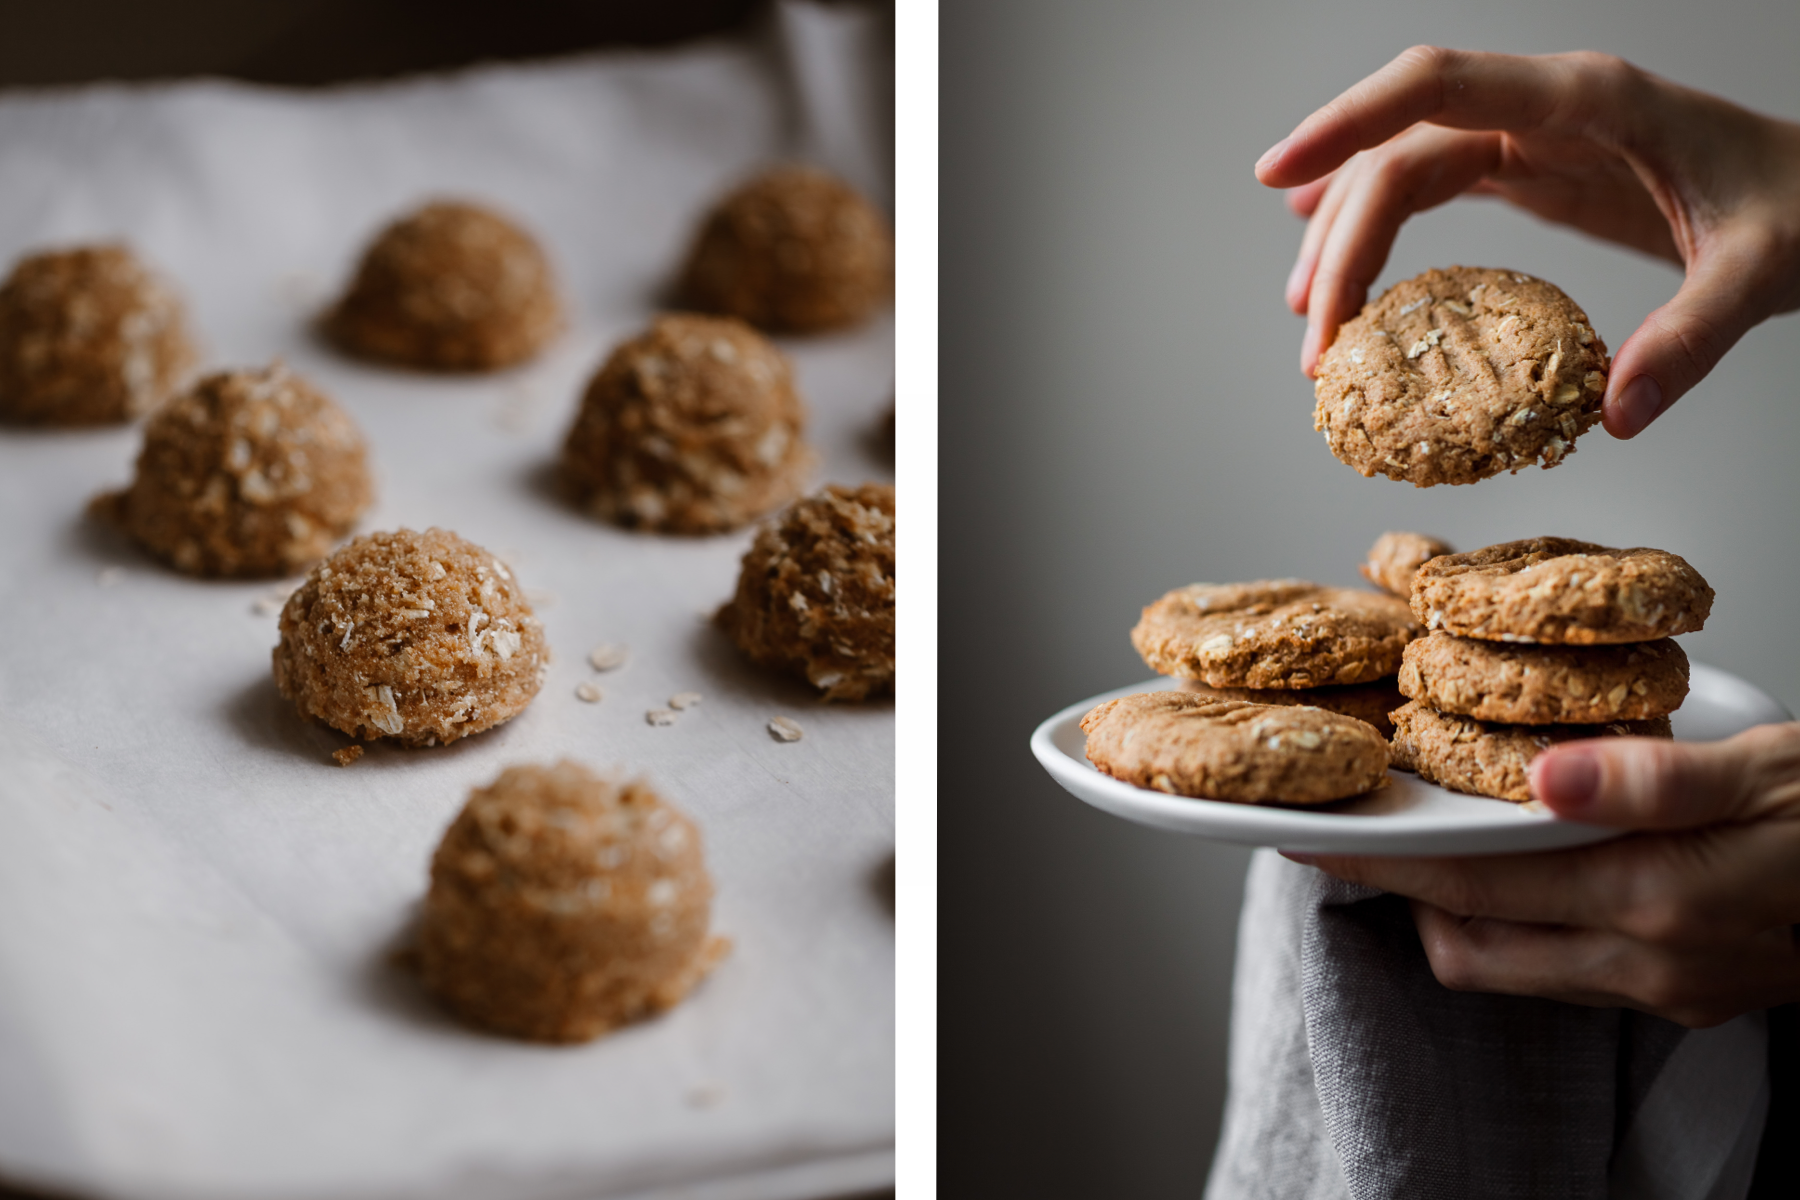 a double image of unbaked cookies balls on a baking tray, and baked cookies on a plate with a hand holding one cookie.